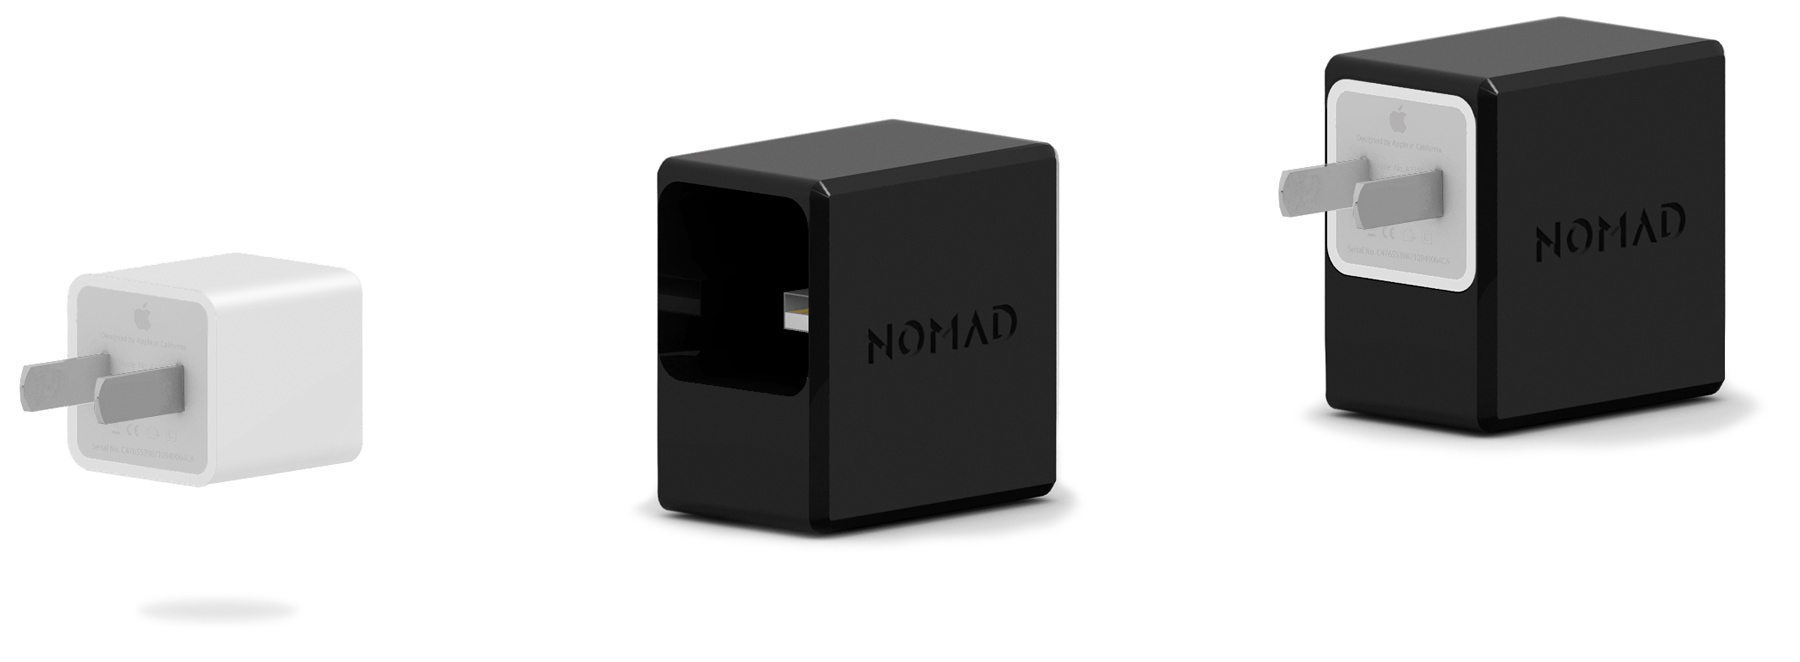 Photo of NomadPlus, Recarregador Apple com Bateria